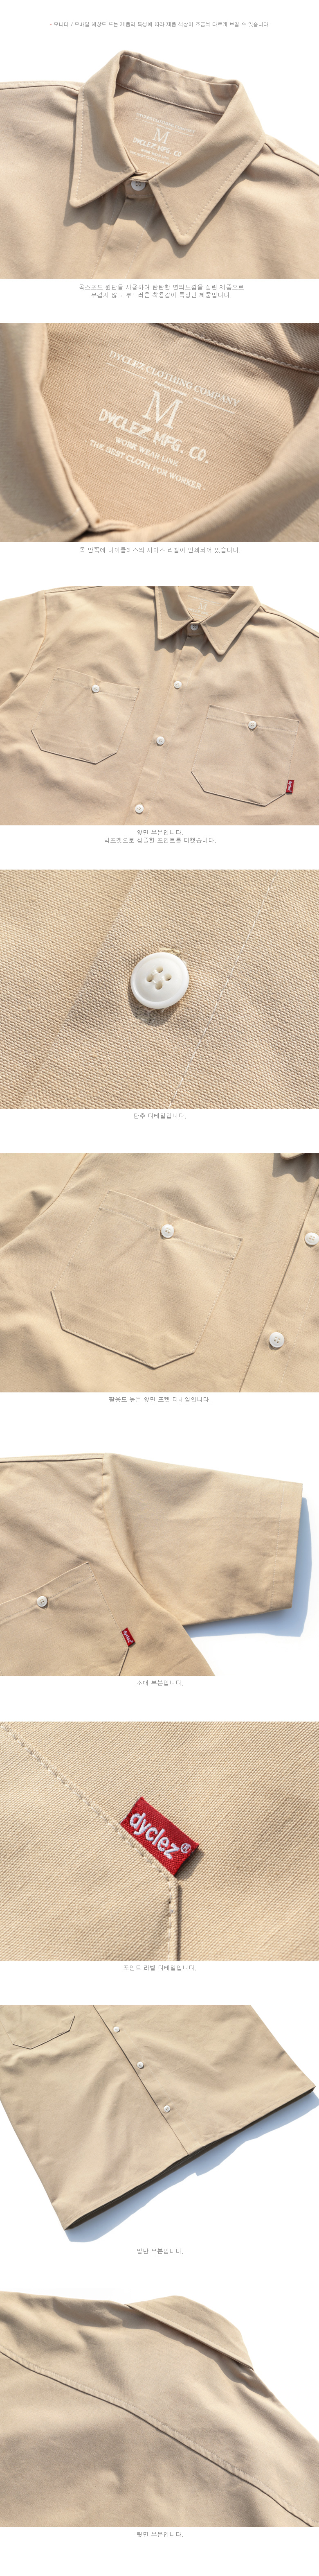 20180412_dy_twopocket_shirt_beige_uk_02.jpg